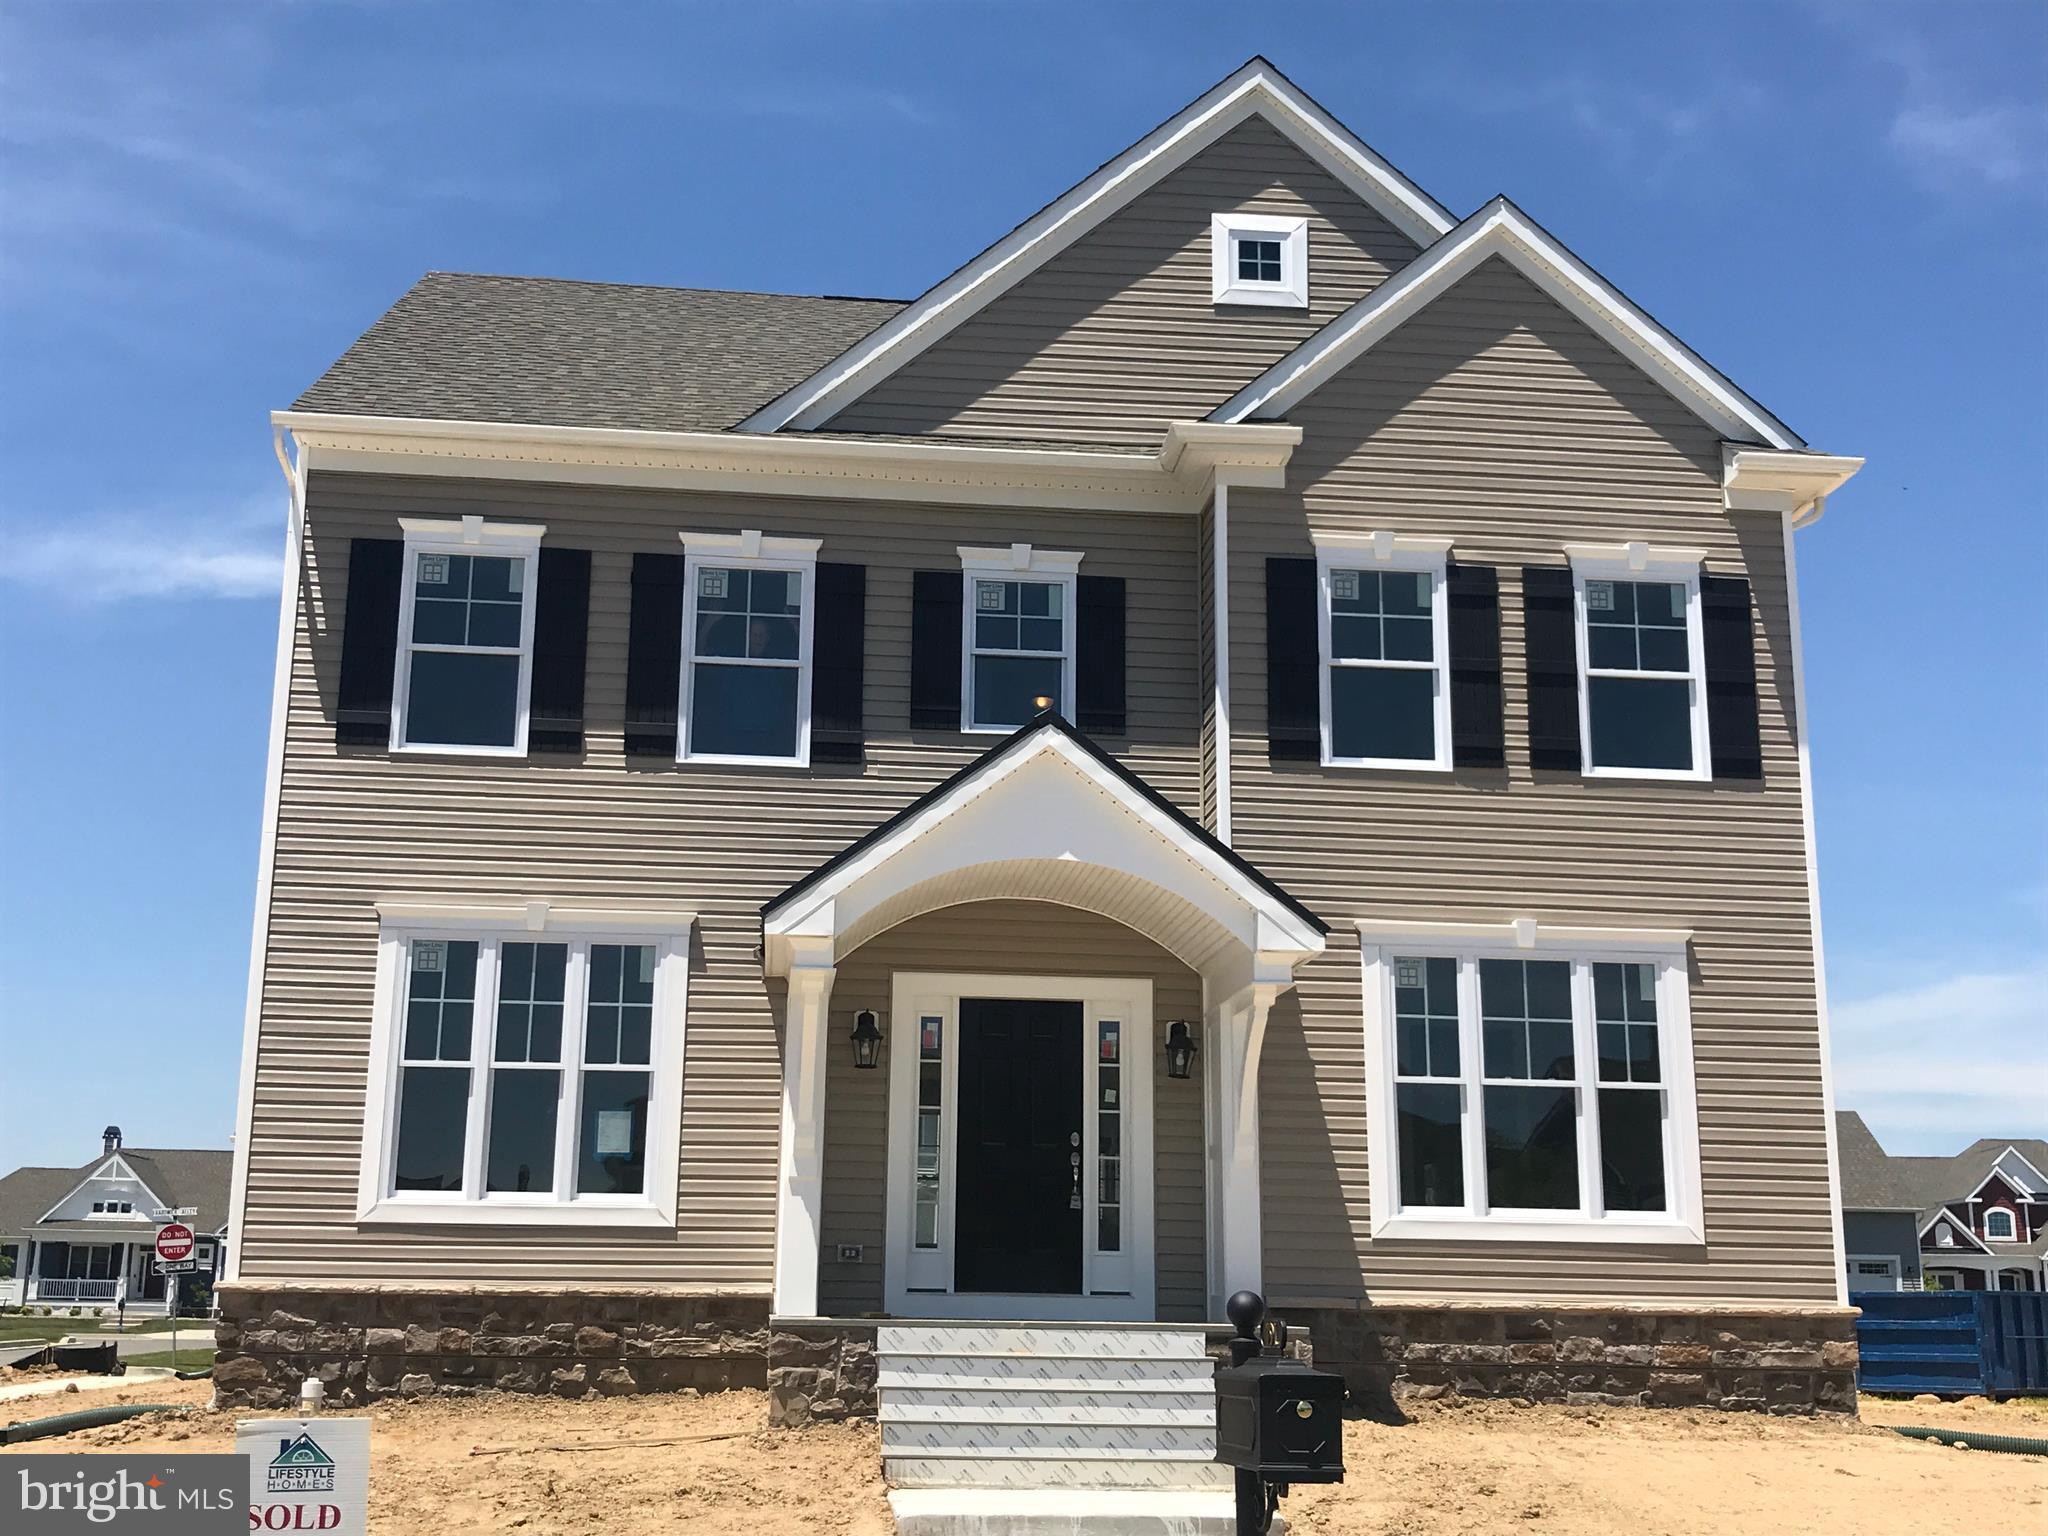 The Newtown Model.      Appraisers - Call listing agent for more information.For room dimensions and floorplans see www.Lifestylehomes.us.